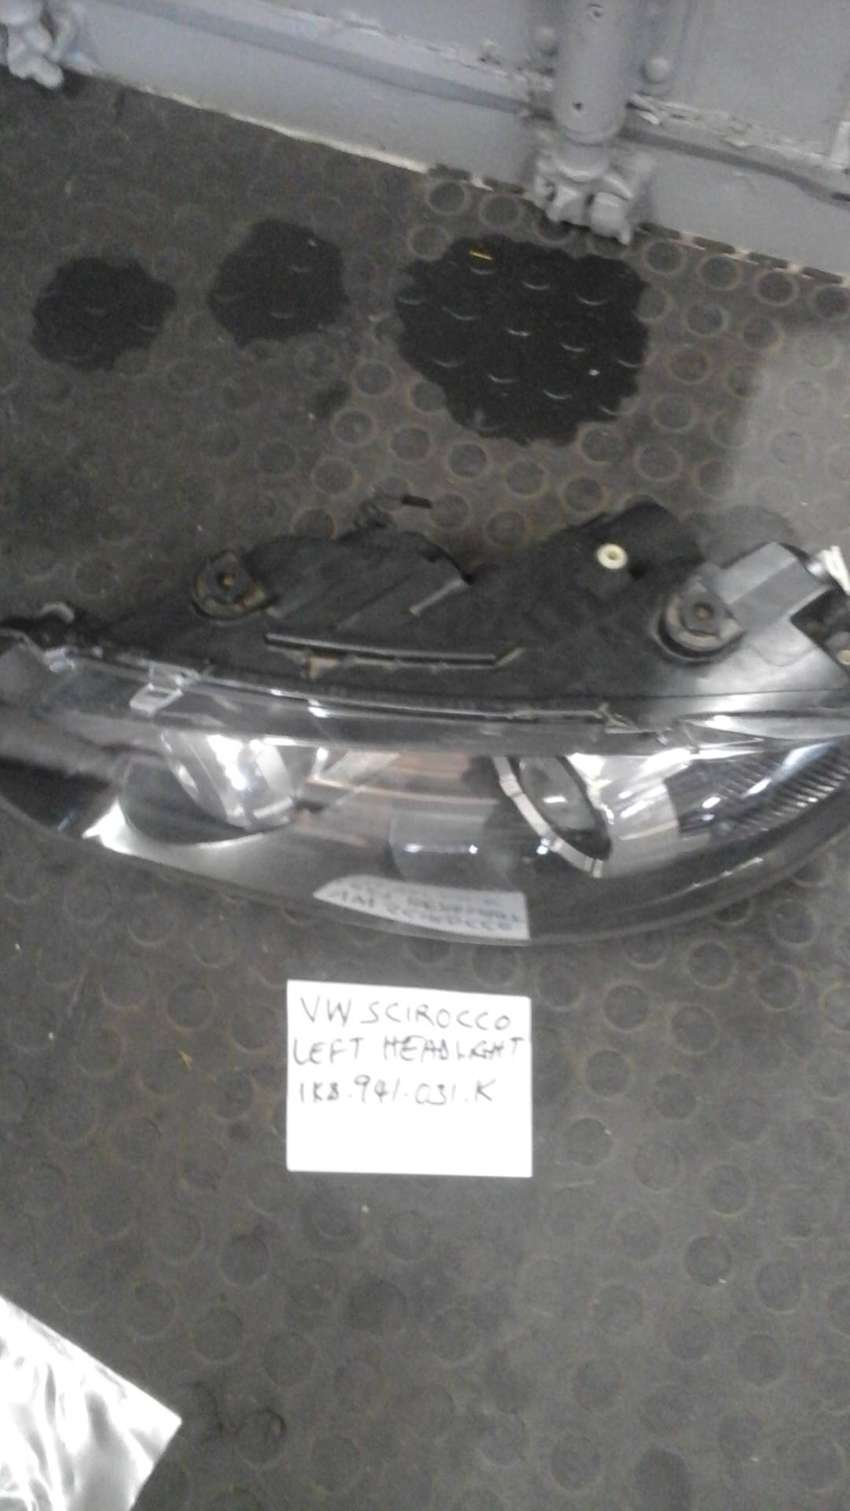 VW Scirocco Left HeadlightC 0